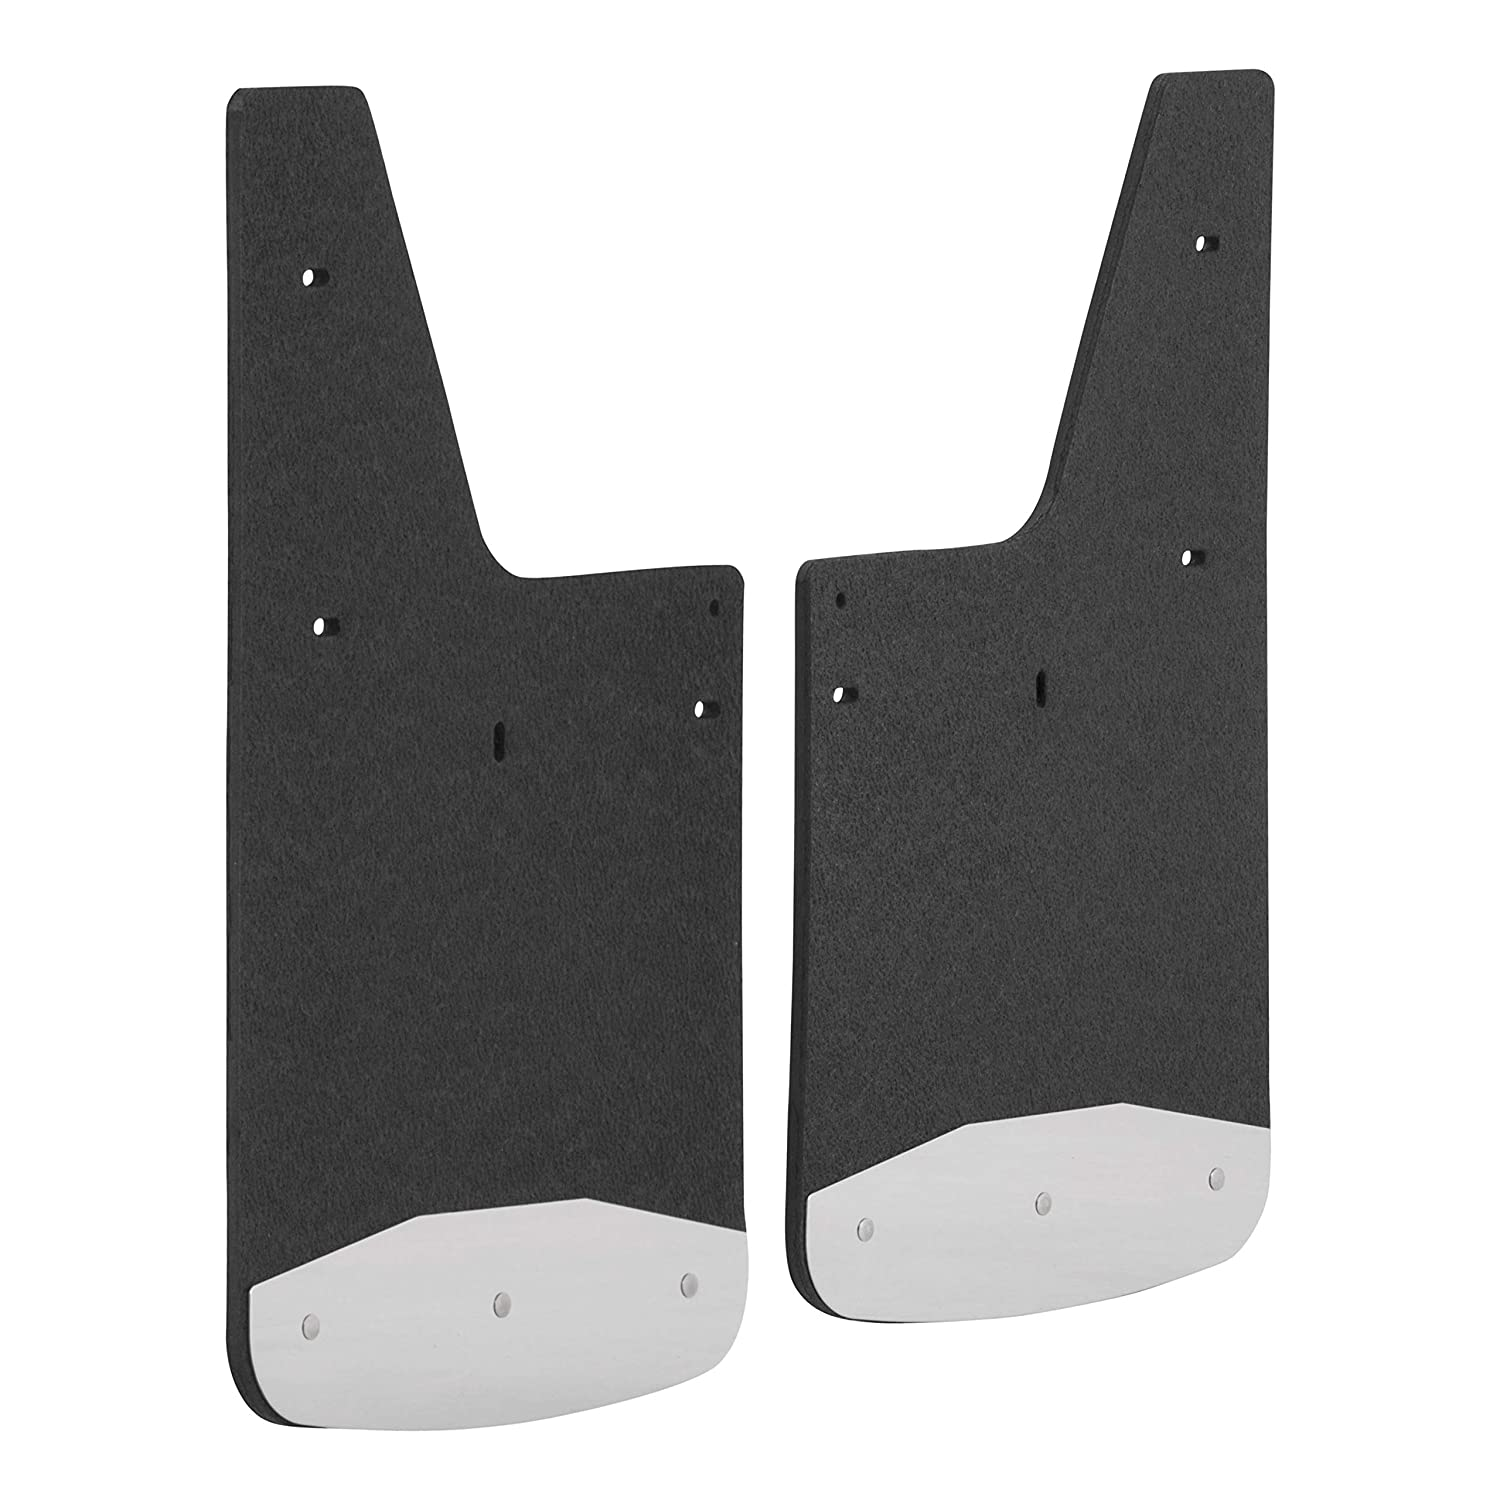 LUVERNE 251540 Front and Rear 12 x 20-Inch Textured Rubber Mud Guards Black 12 x 20 for for Select Chevrolet Colorado ZR2